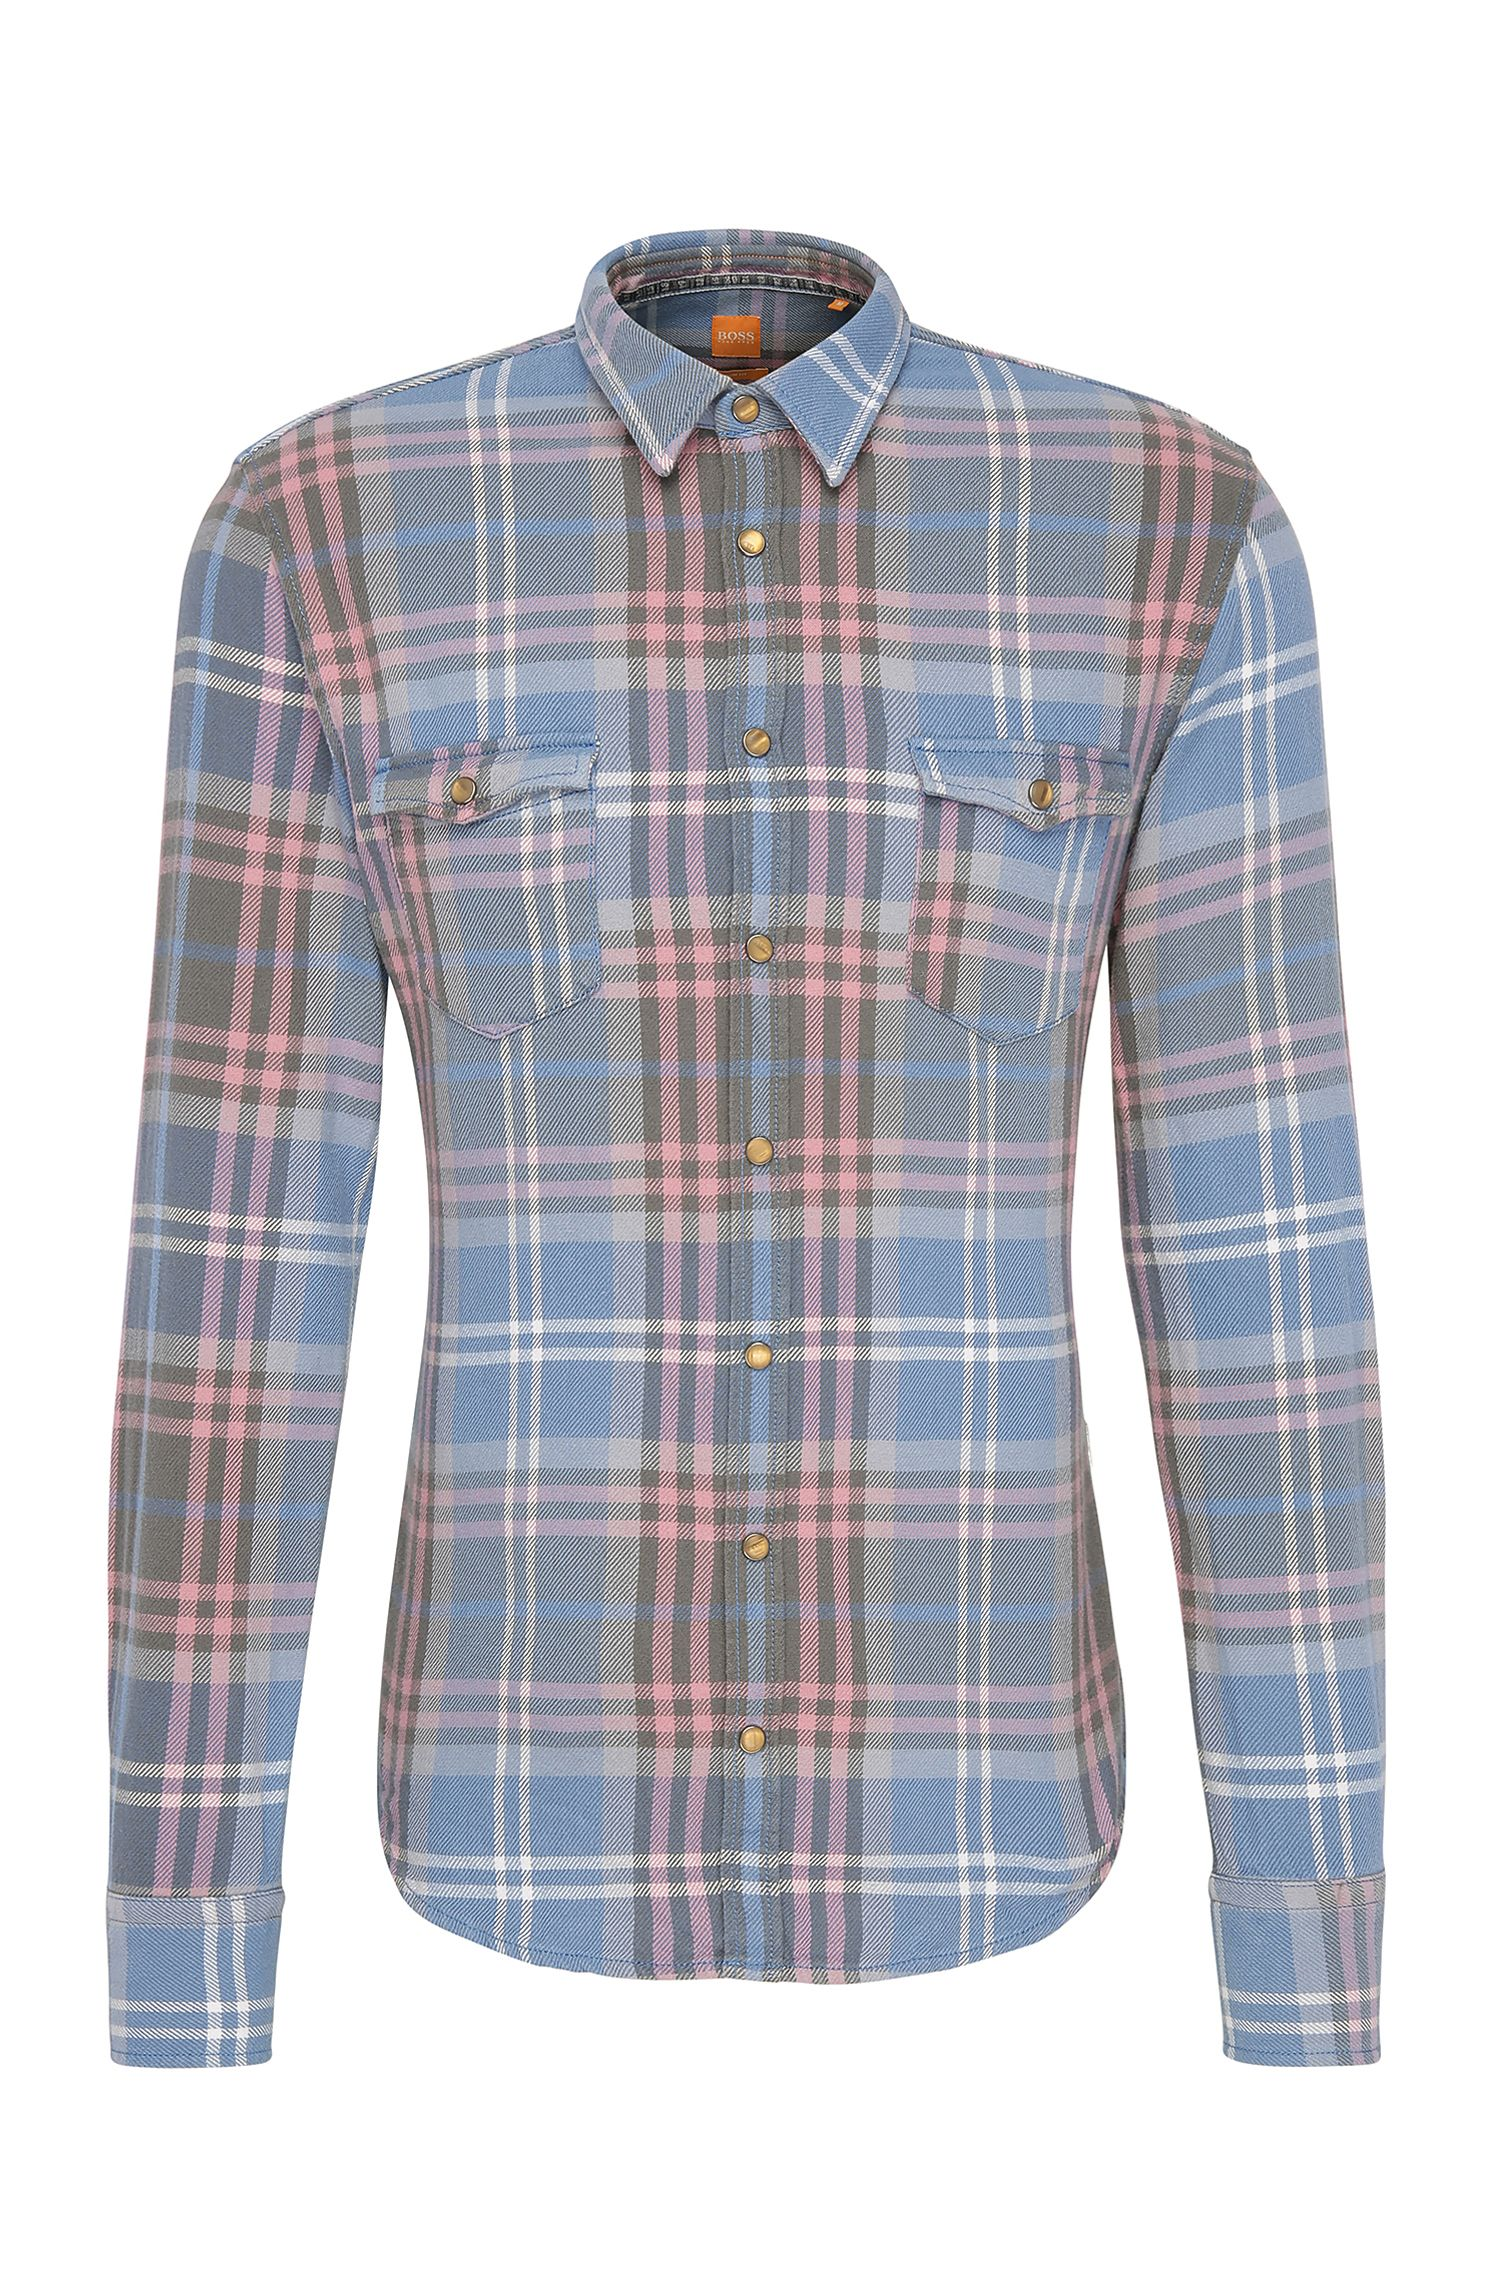 'EdoslimE' | Slim Fit, Plaid Cotton Button Down Shirt